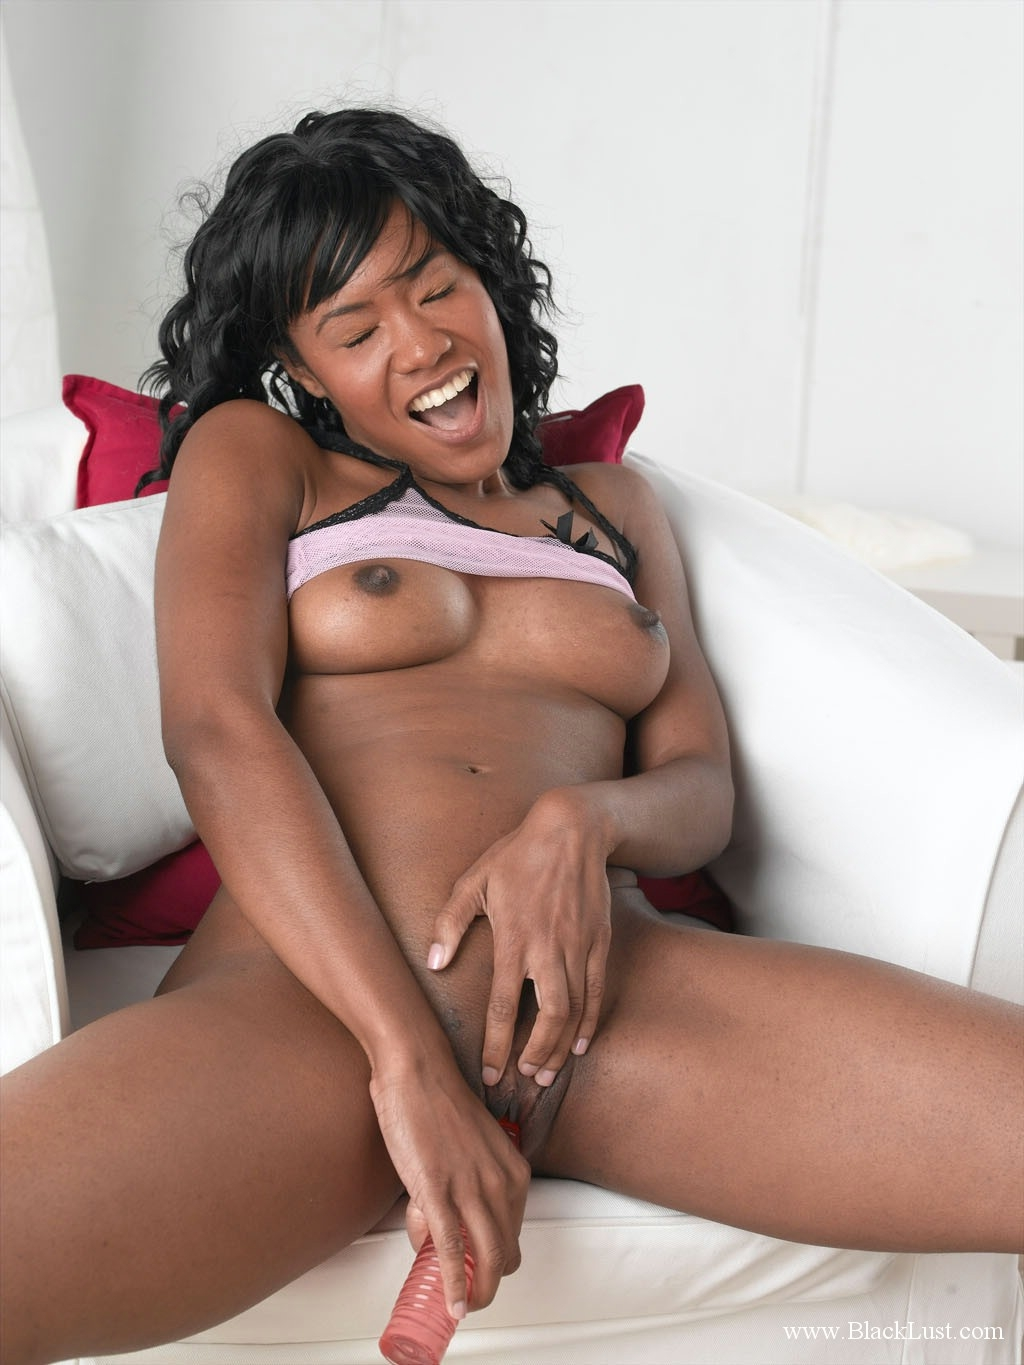 Black lust website free porn pictures and movies of black girls fucking